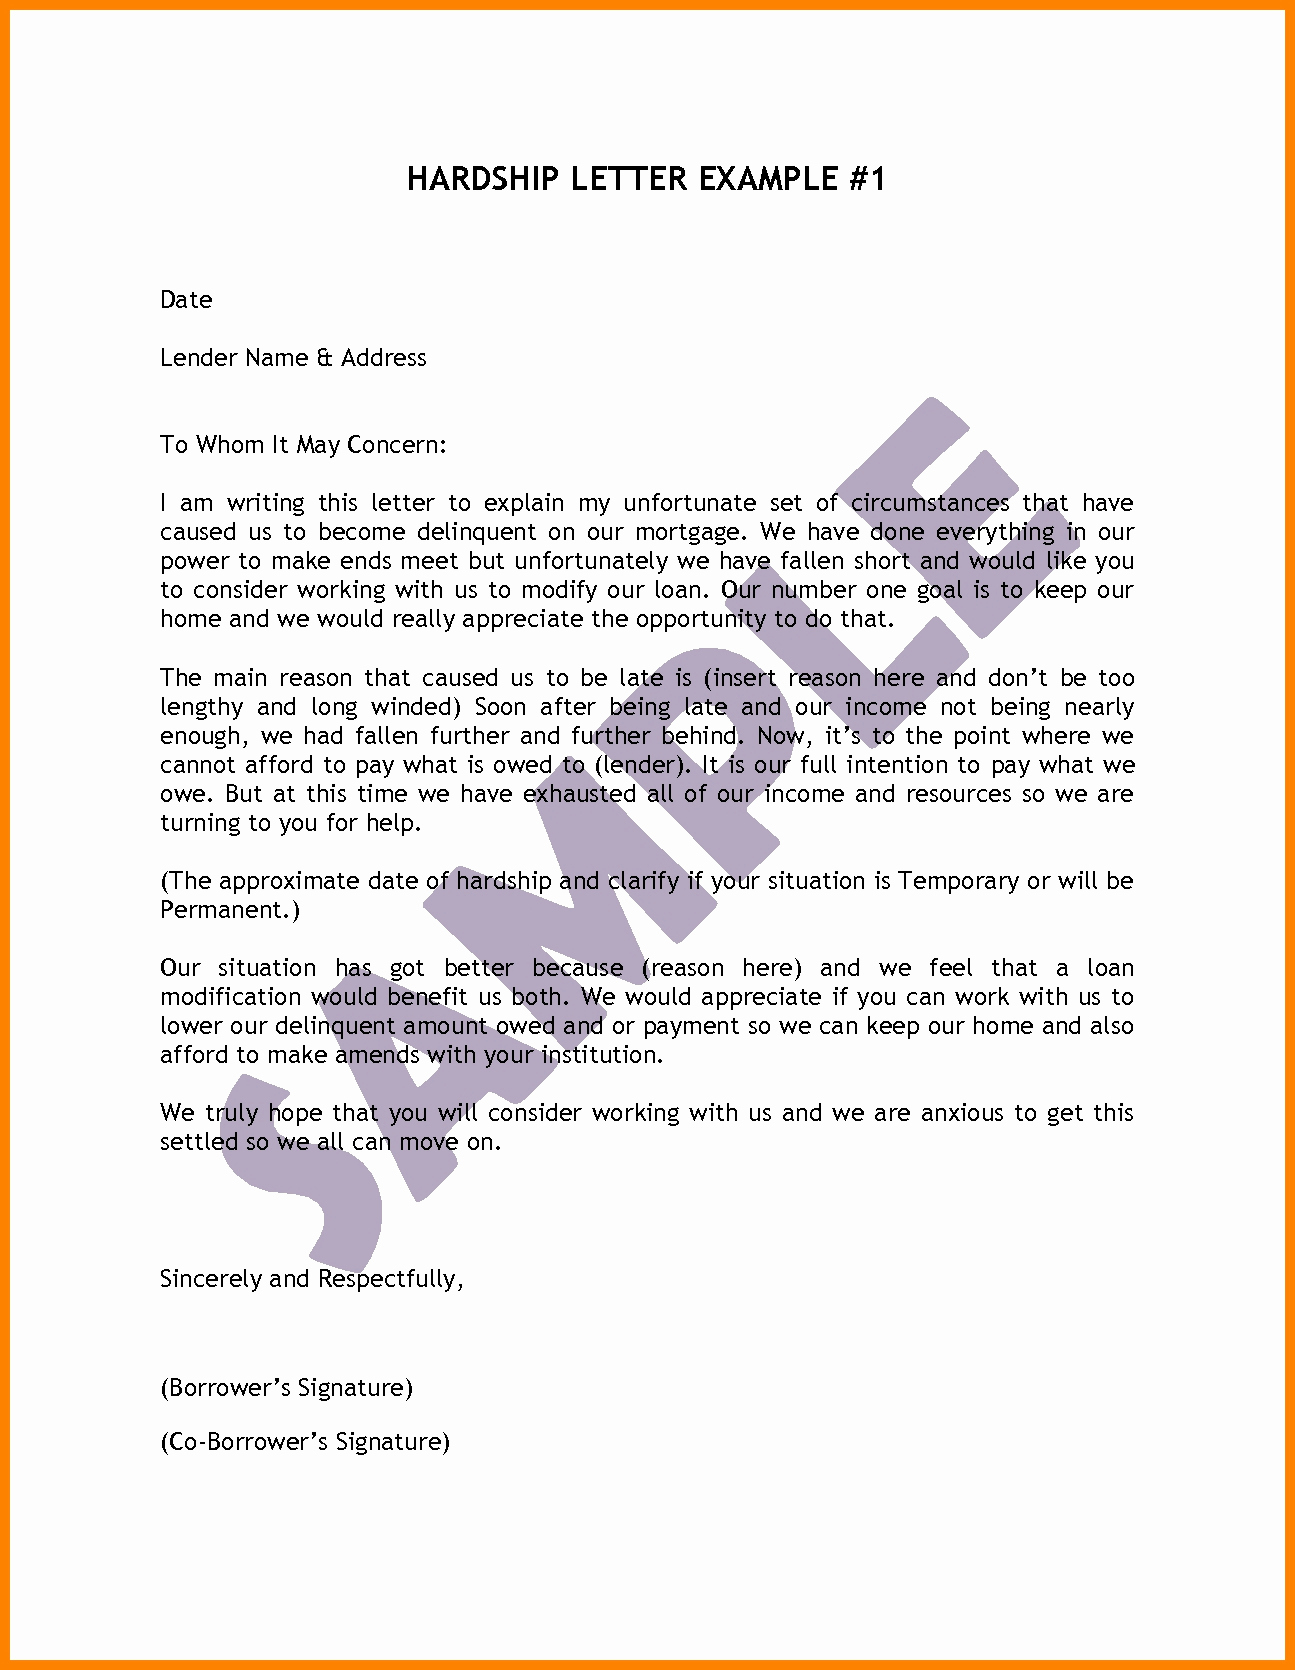 Immigration Hardship Letter Template - How to Write A Hardship Letter for Immigration for A Friend Lovely